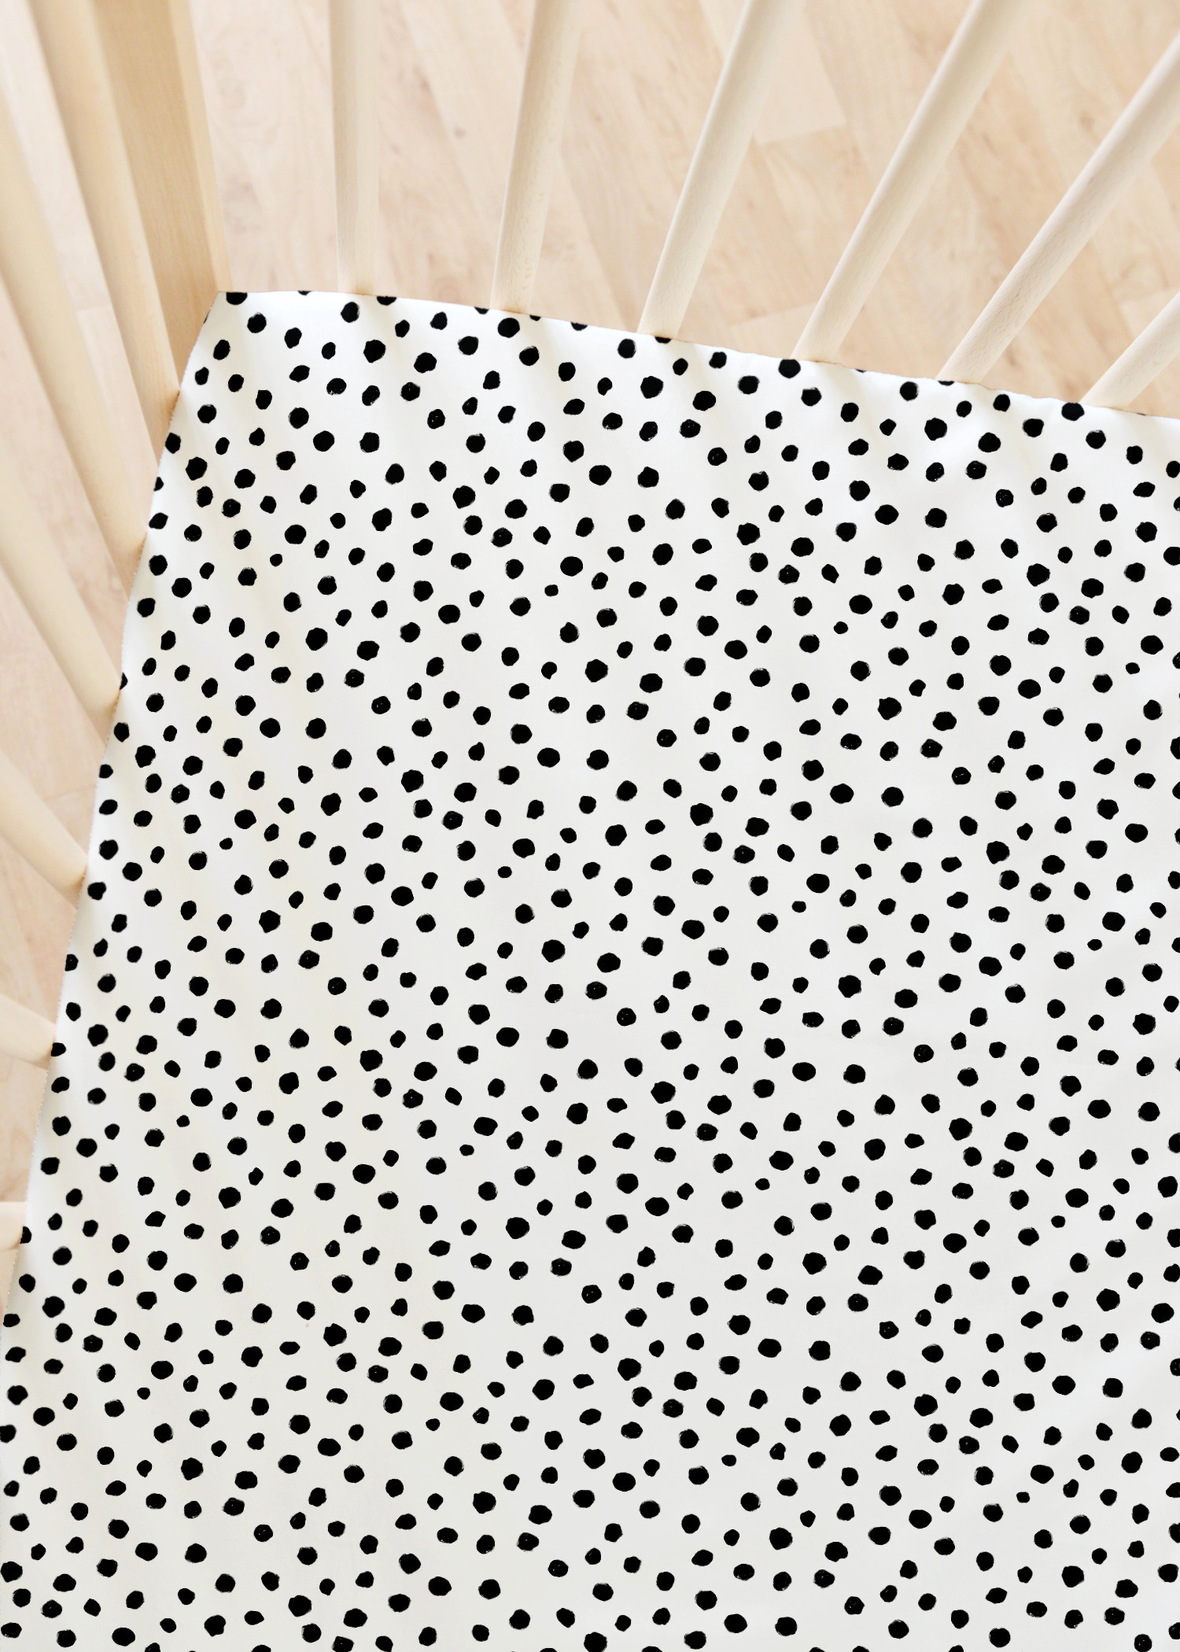 Modern Polka Dot in Black on White